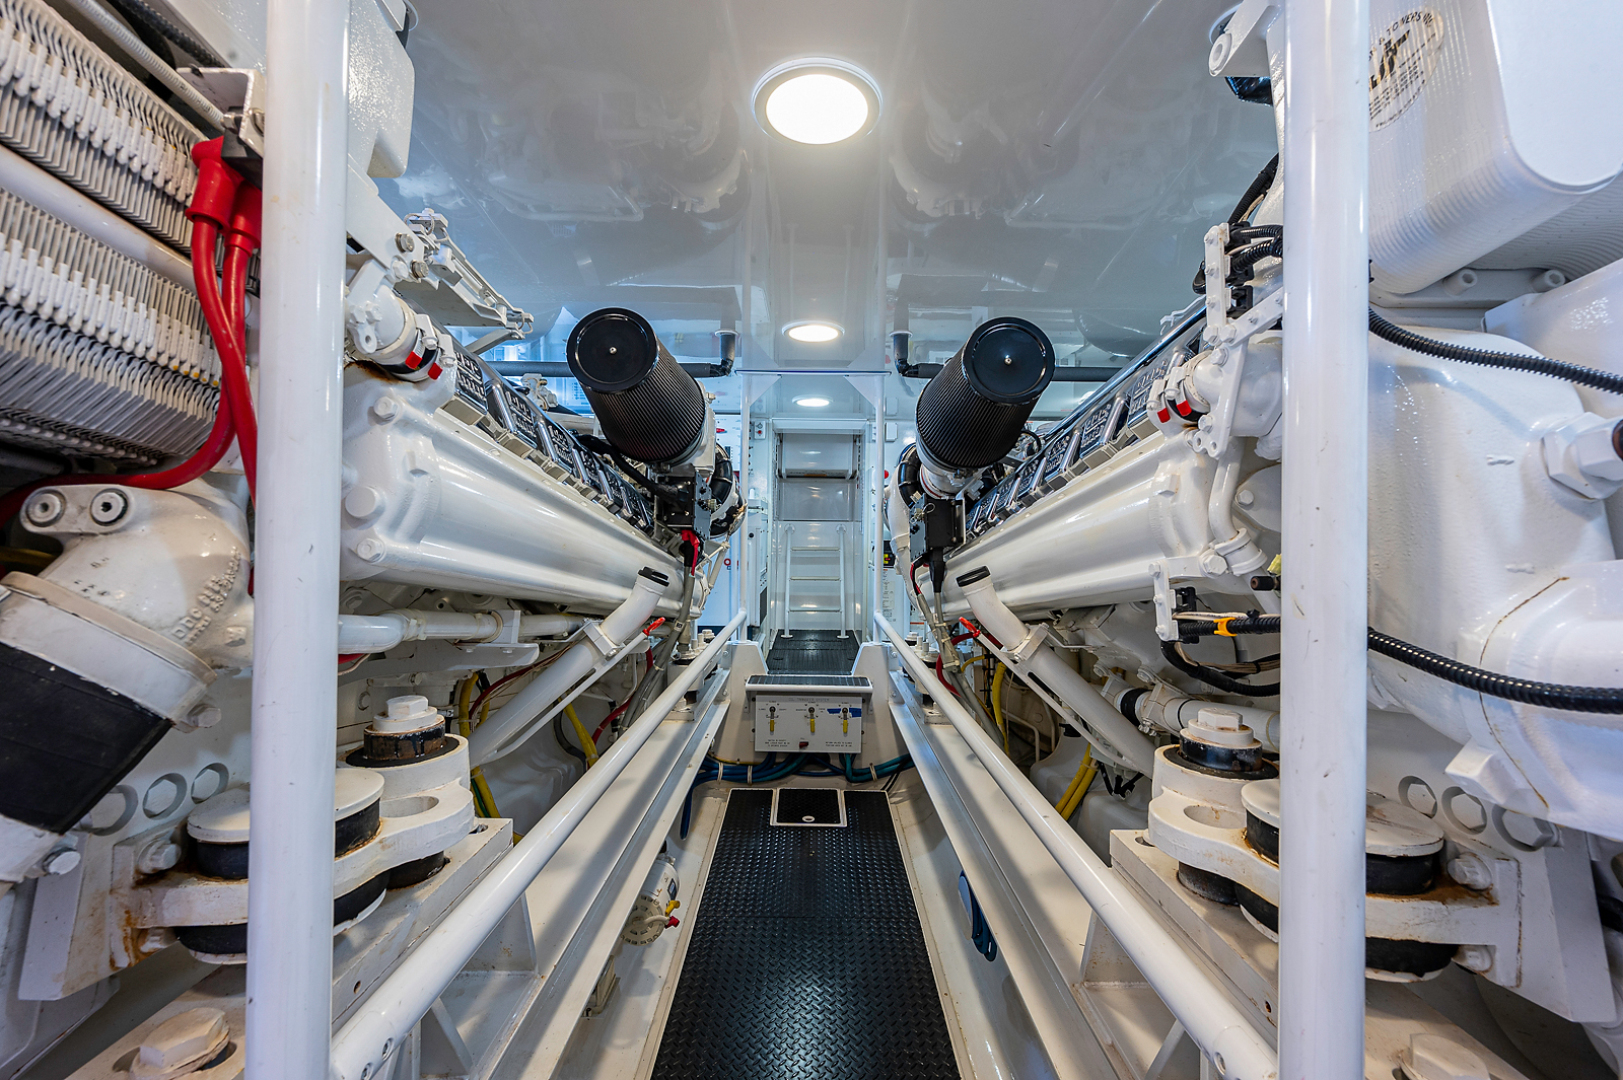 Viking-Convertible 2007-Scoped Out Lighthouse Point-Florida-United States-Engine Room-1552158 | Thumbnail